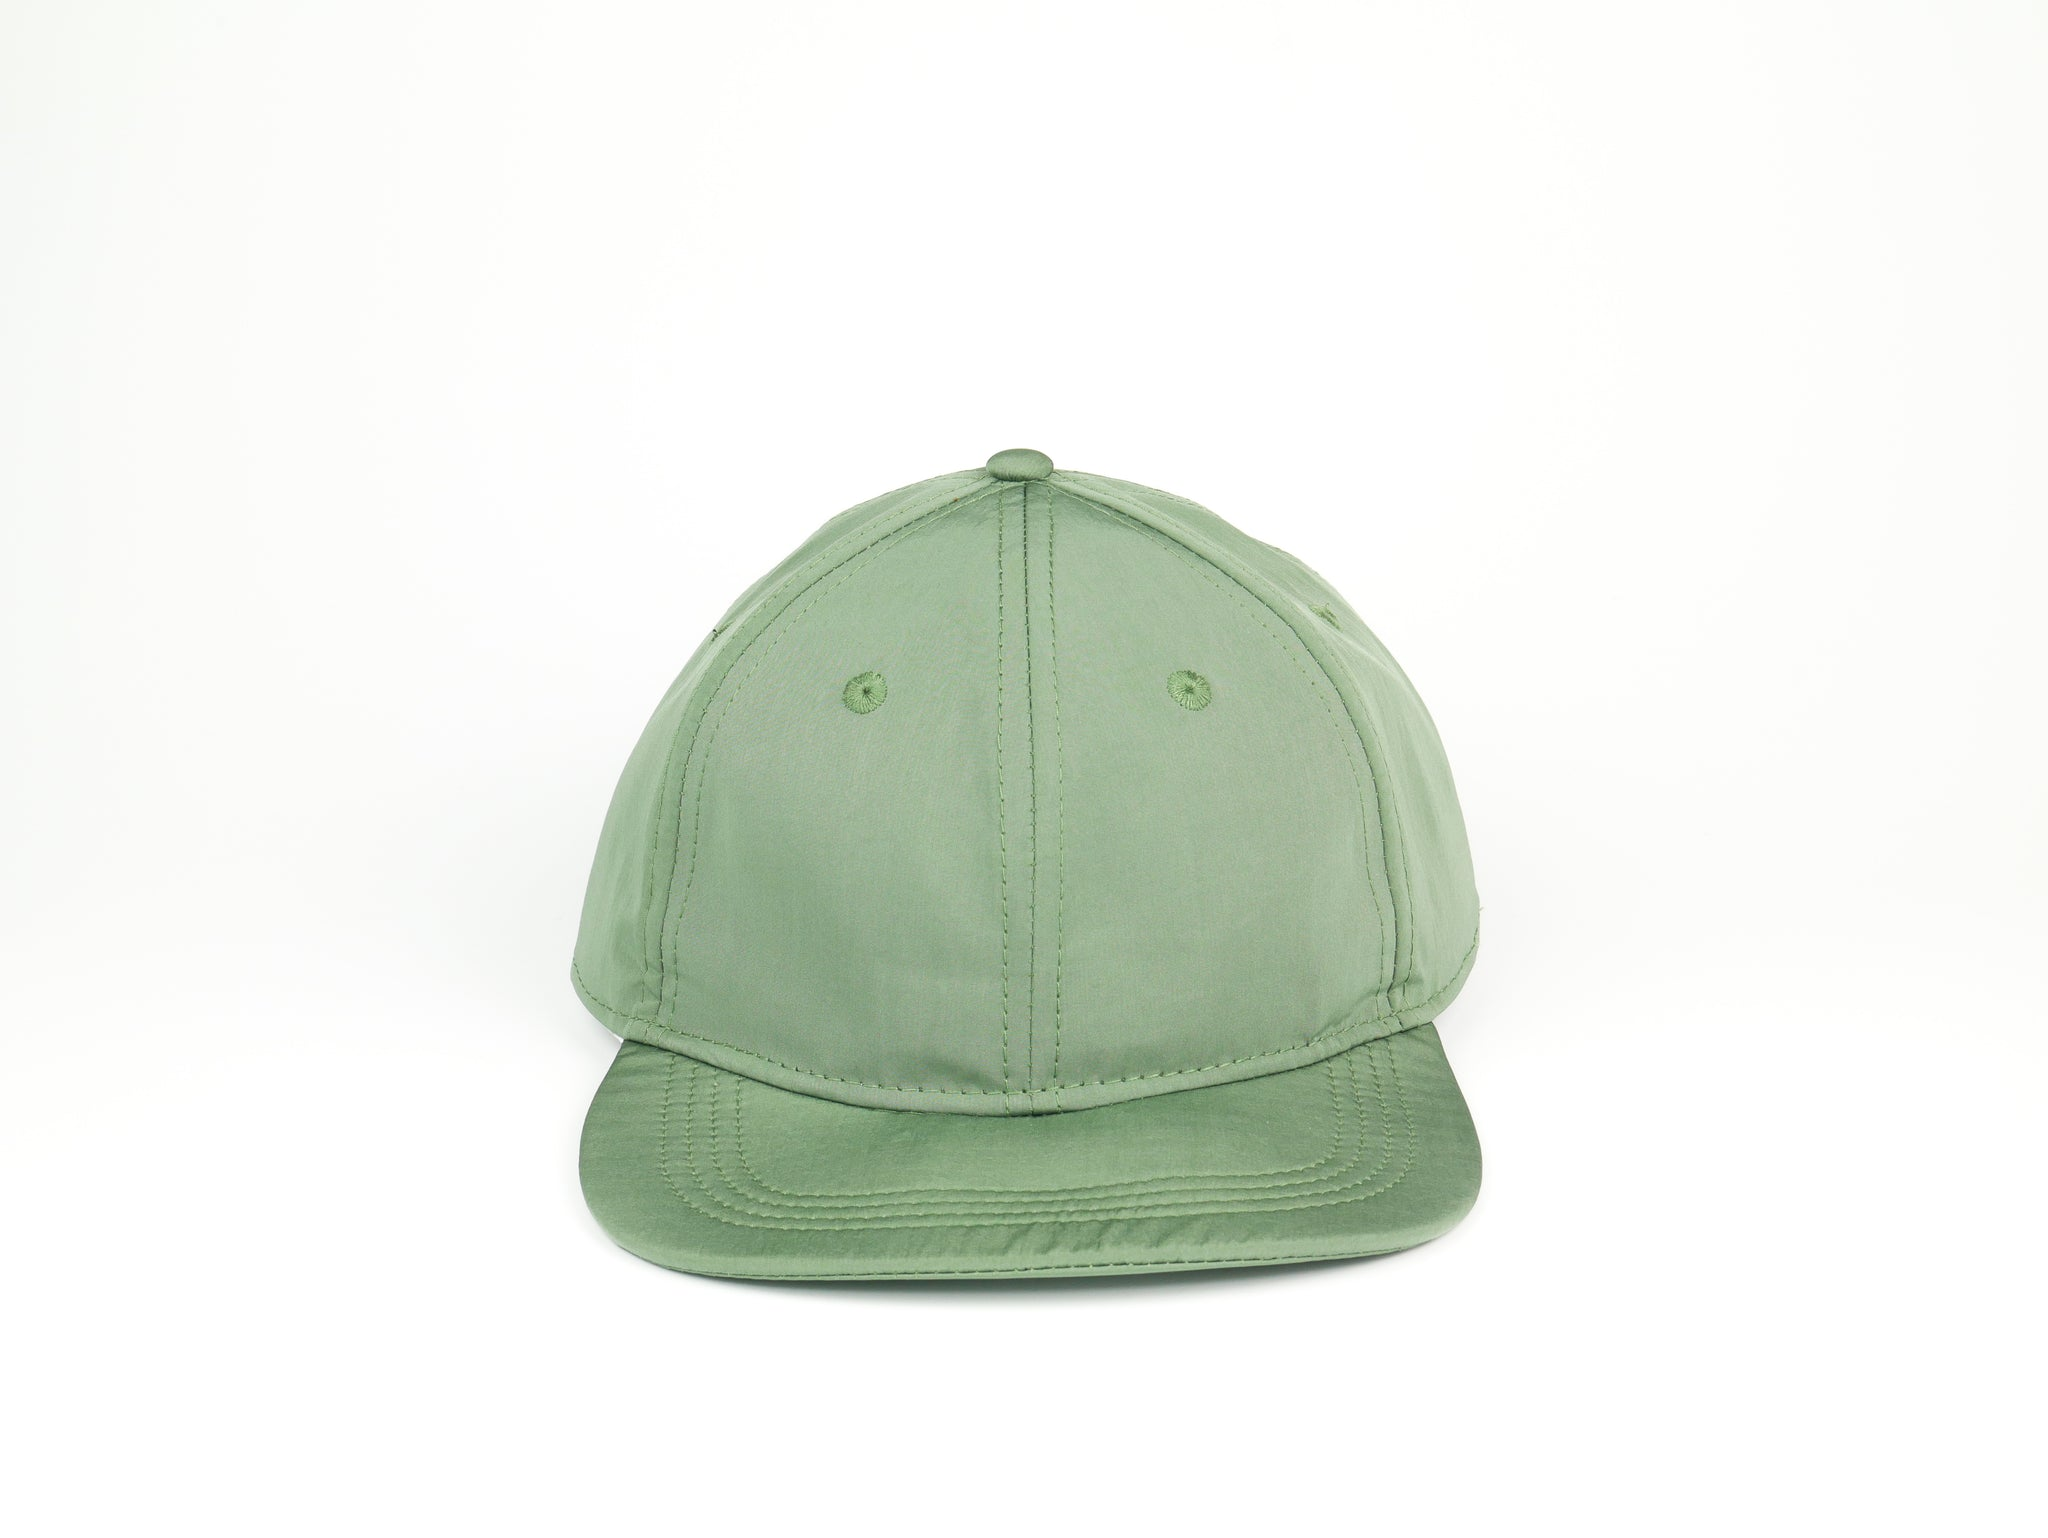 Water Resistant Folding Hat - Olive